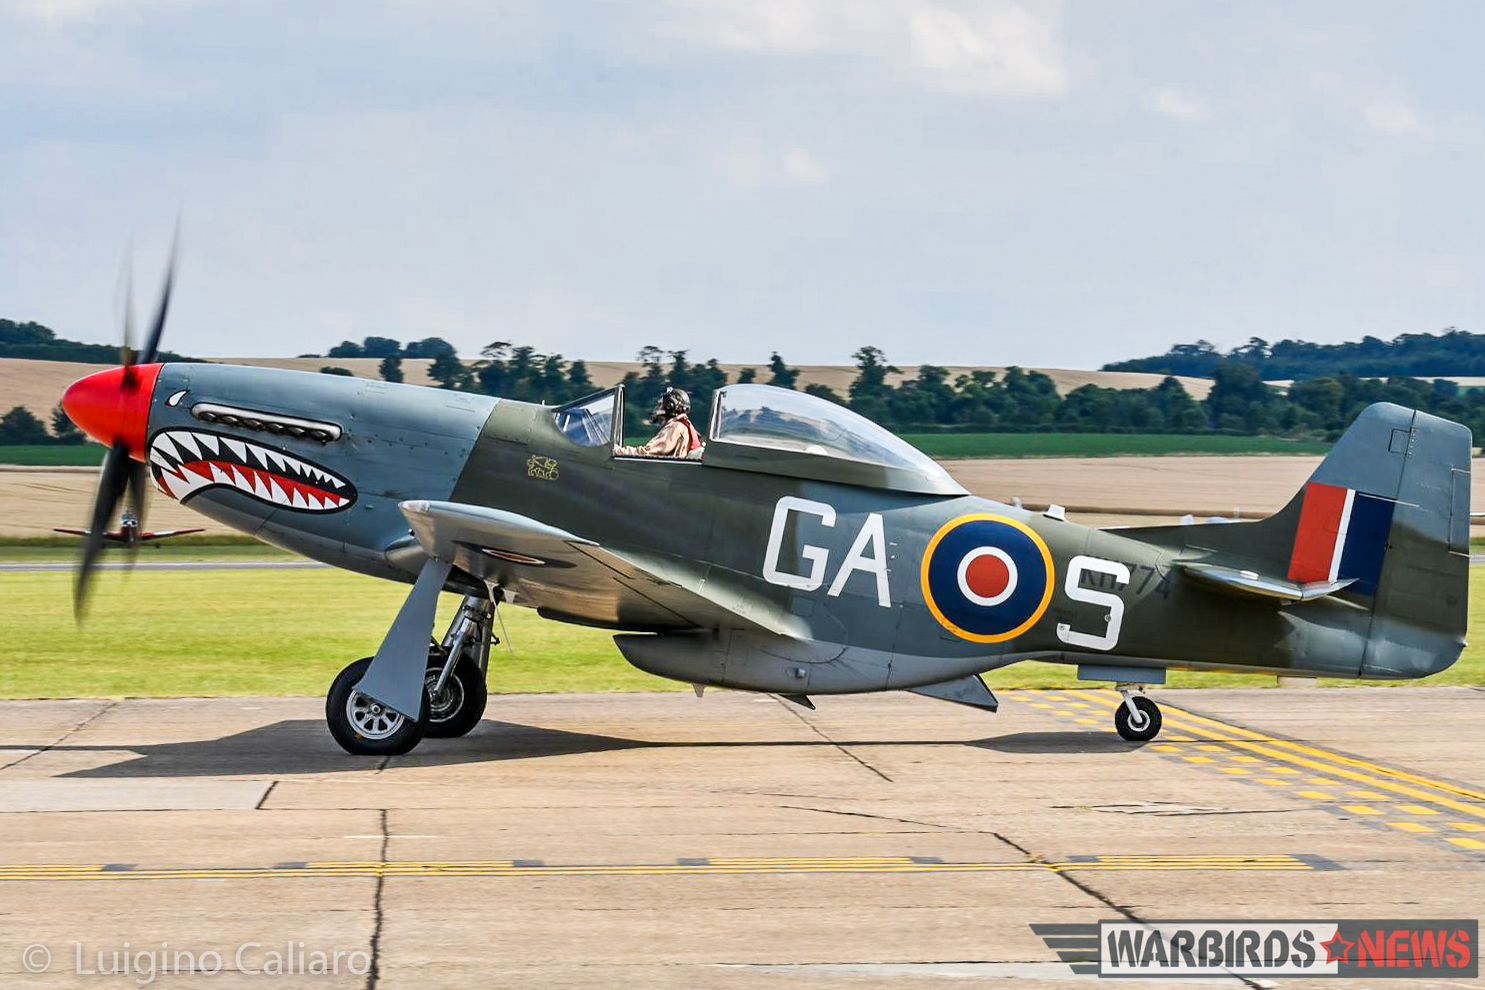 Shaun Patrick's magnificent P-51D 44-73877 (marked as an RAF Mustang IV KH774). (photo by Luigino Caliaro)